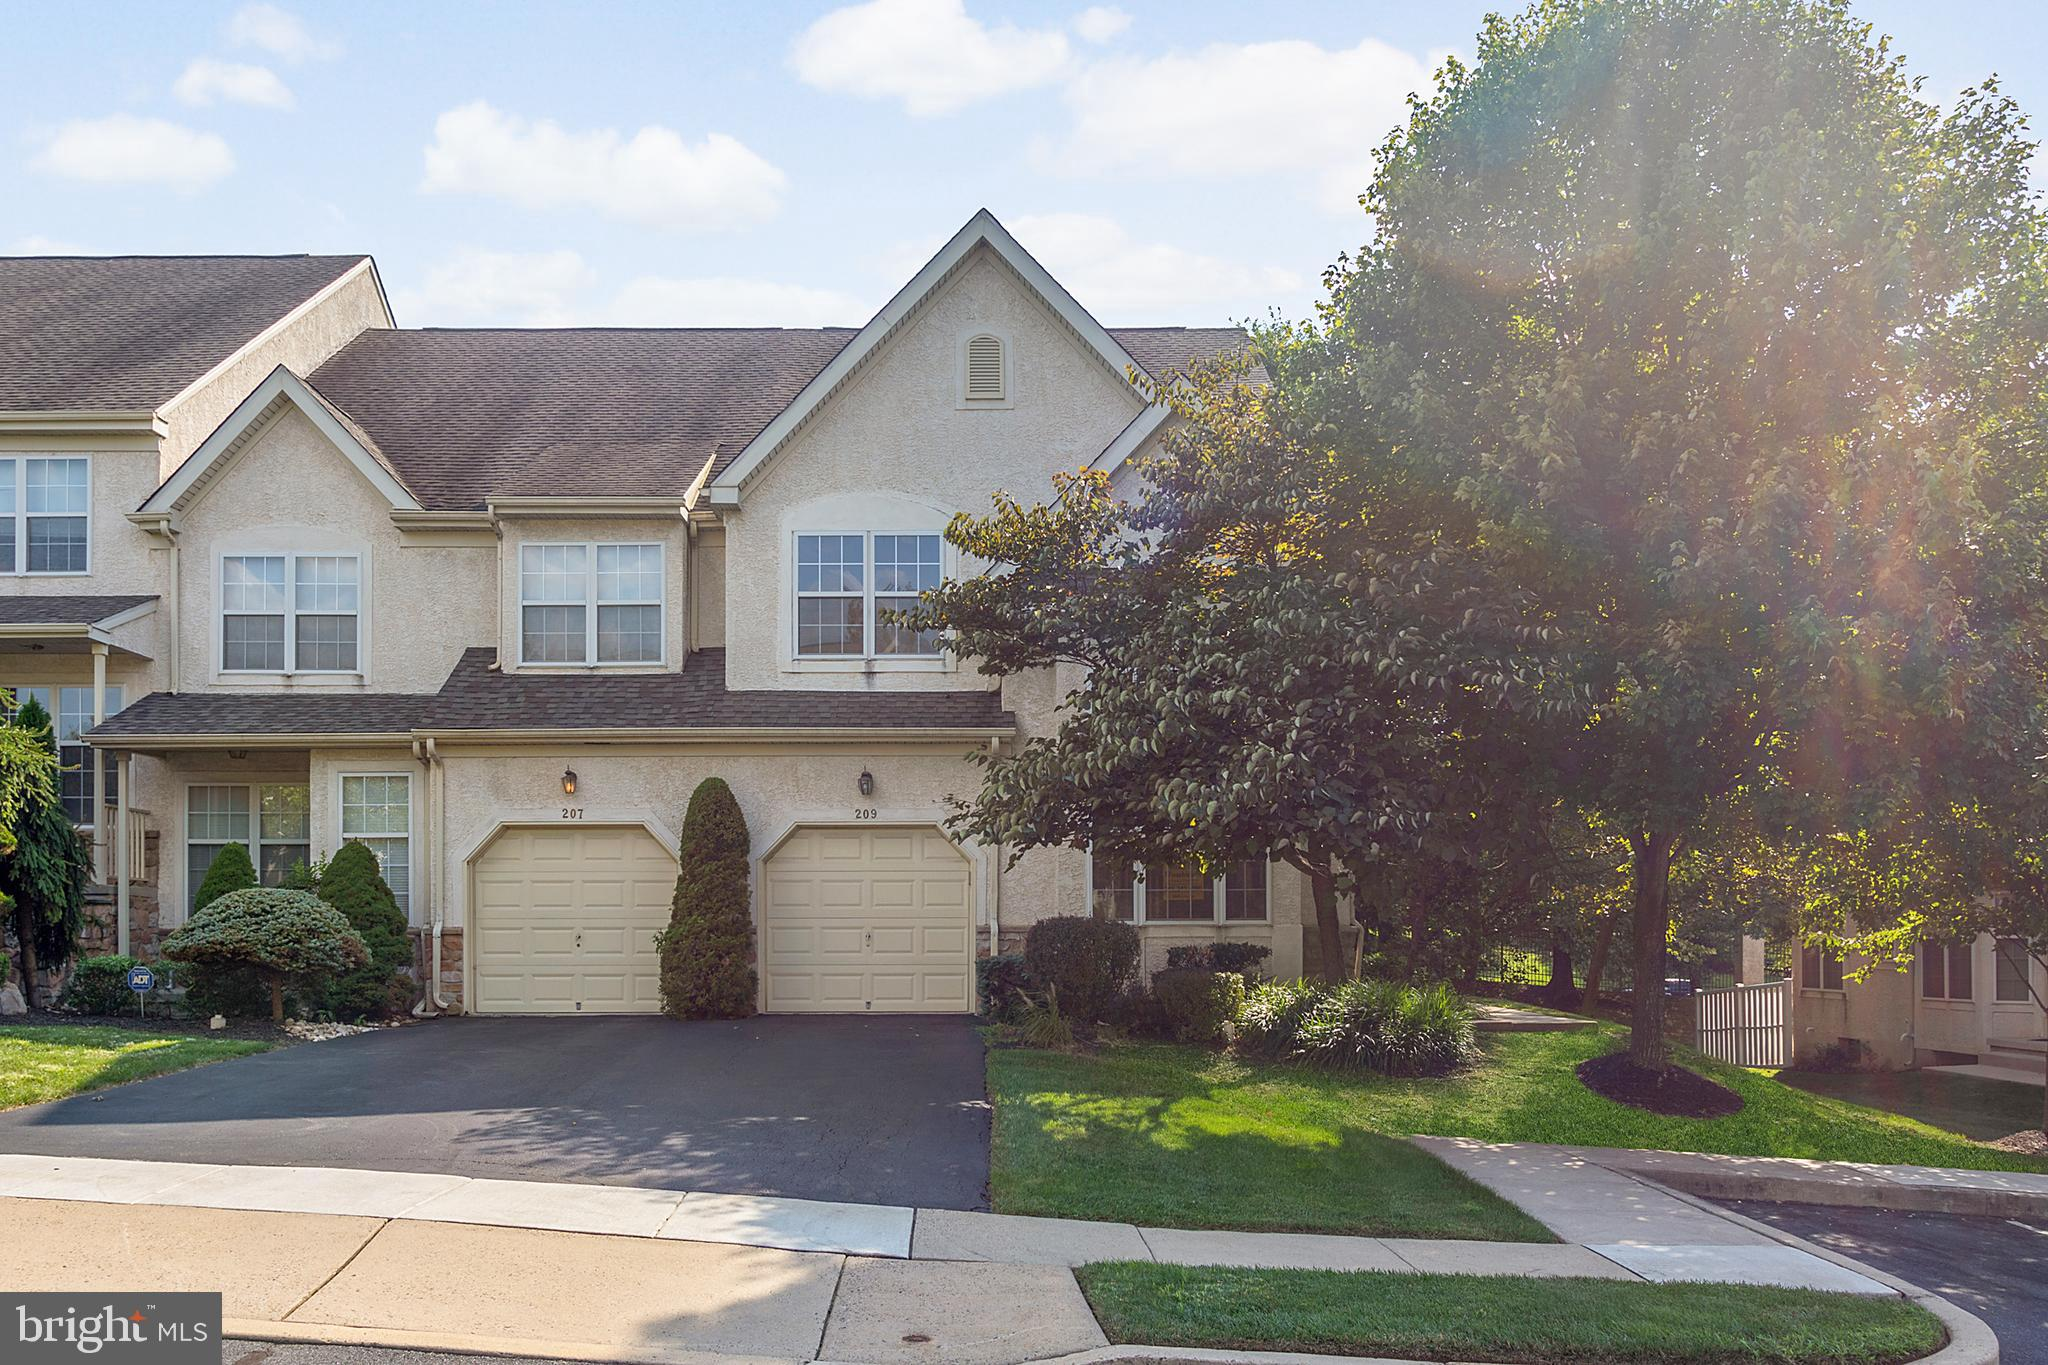 209 BROOKDALE COURT, DRESHER, PA 19025